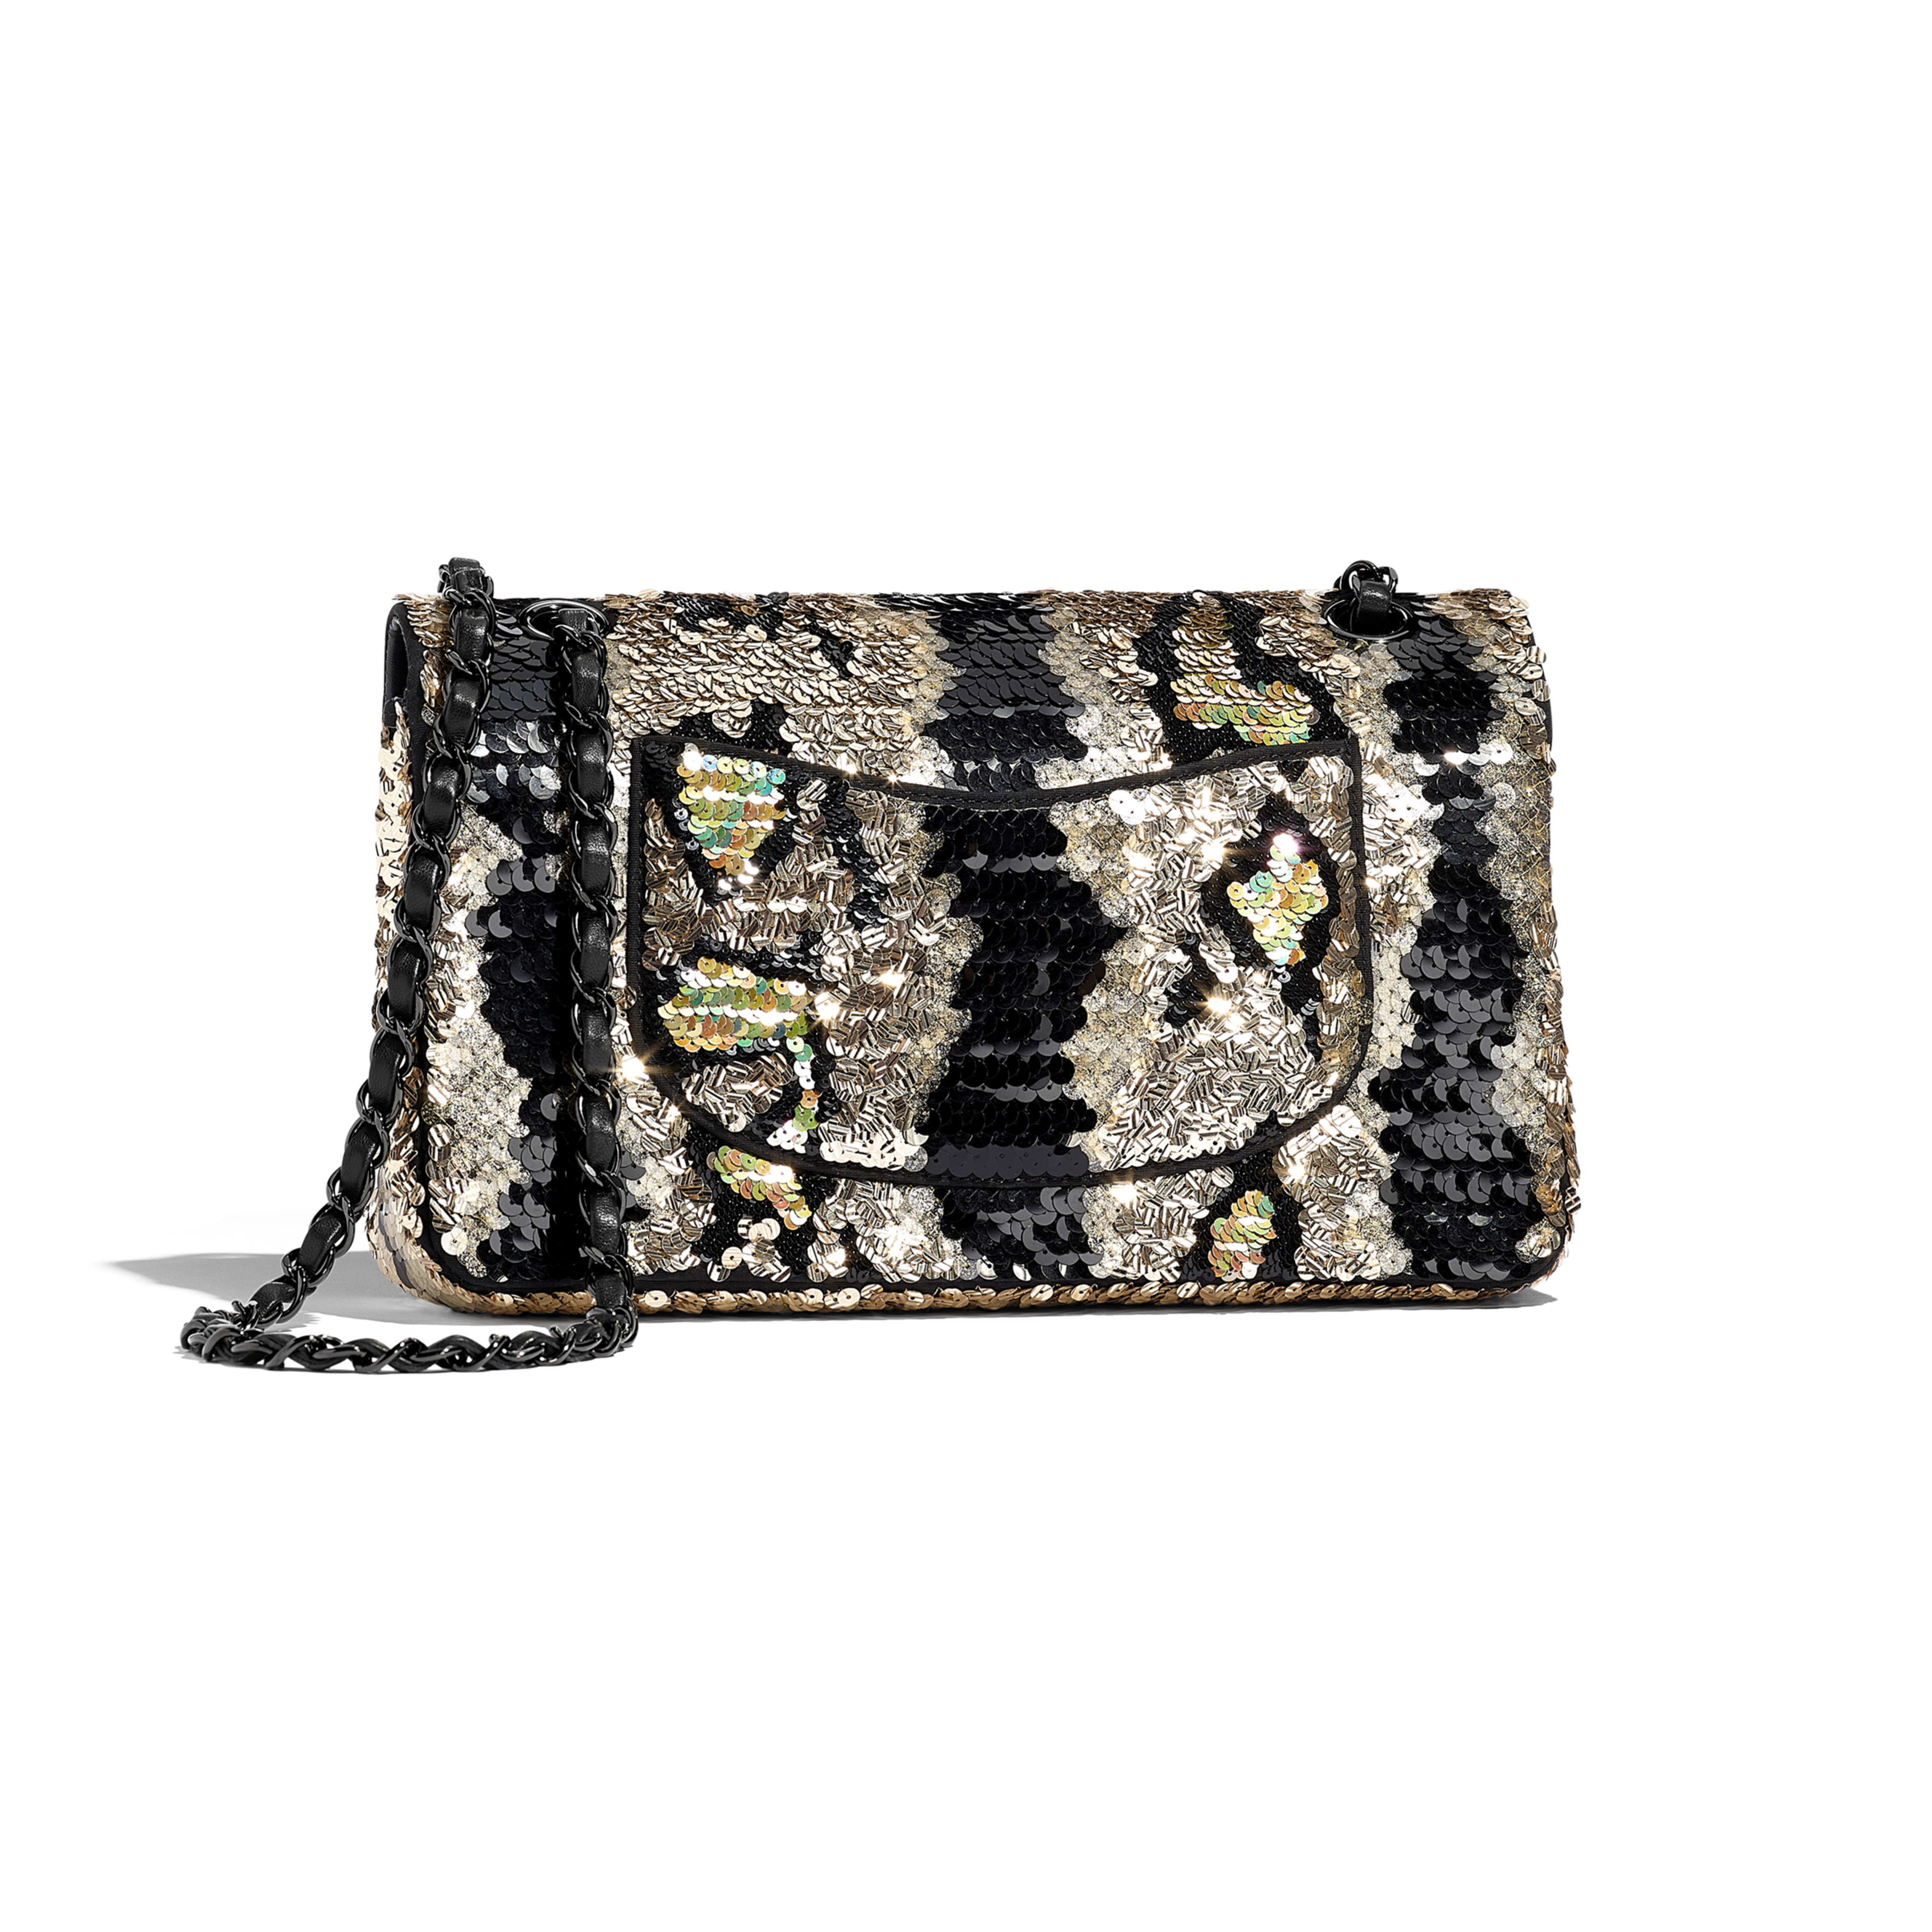 Classic Handbag - Gold & Black - Sequins & Black Metal - Alternative view - see full sized version